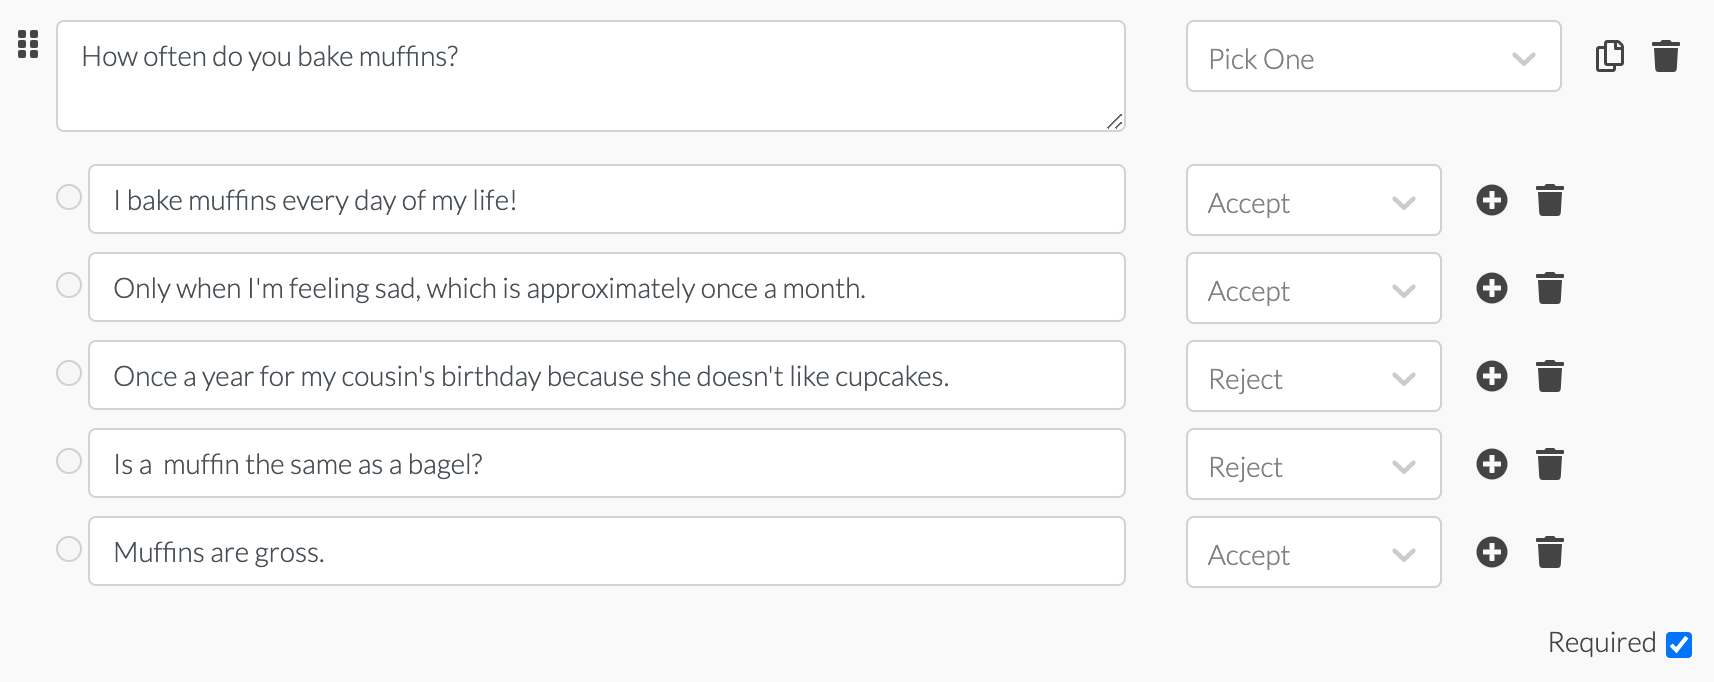 fun screener survey example question about muffins